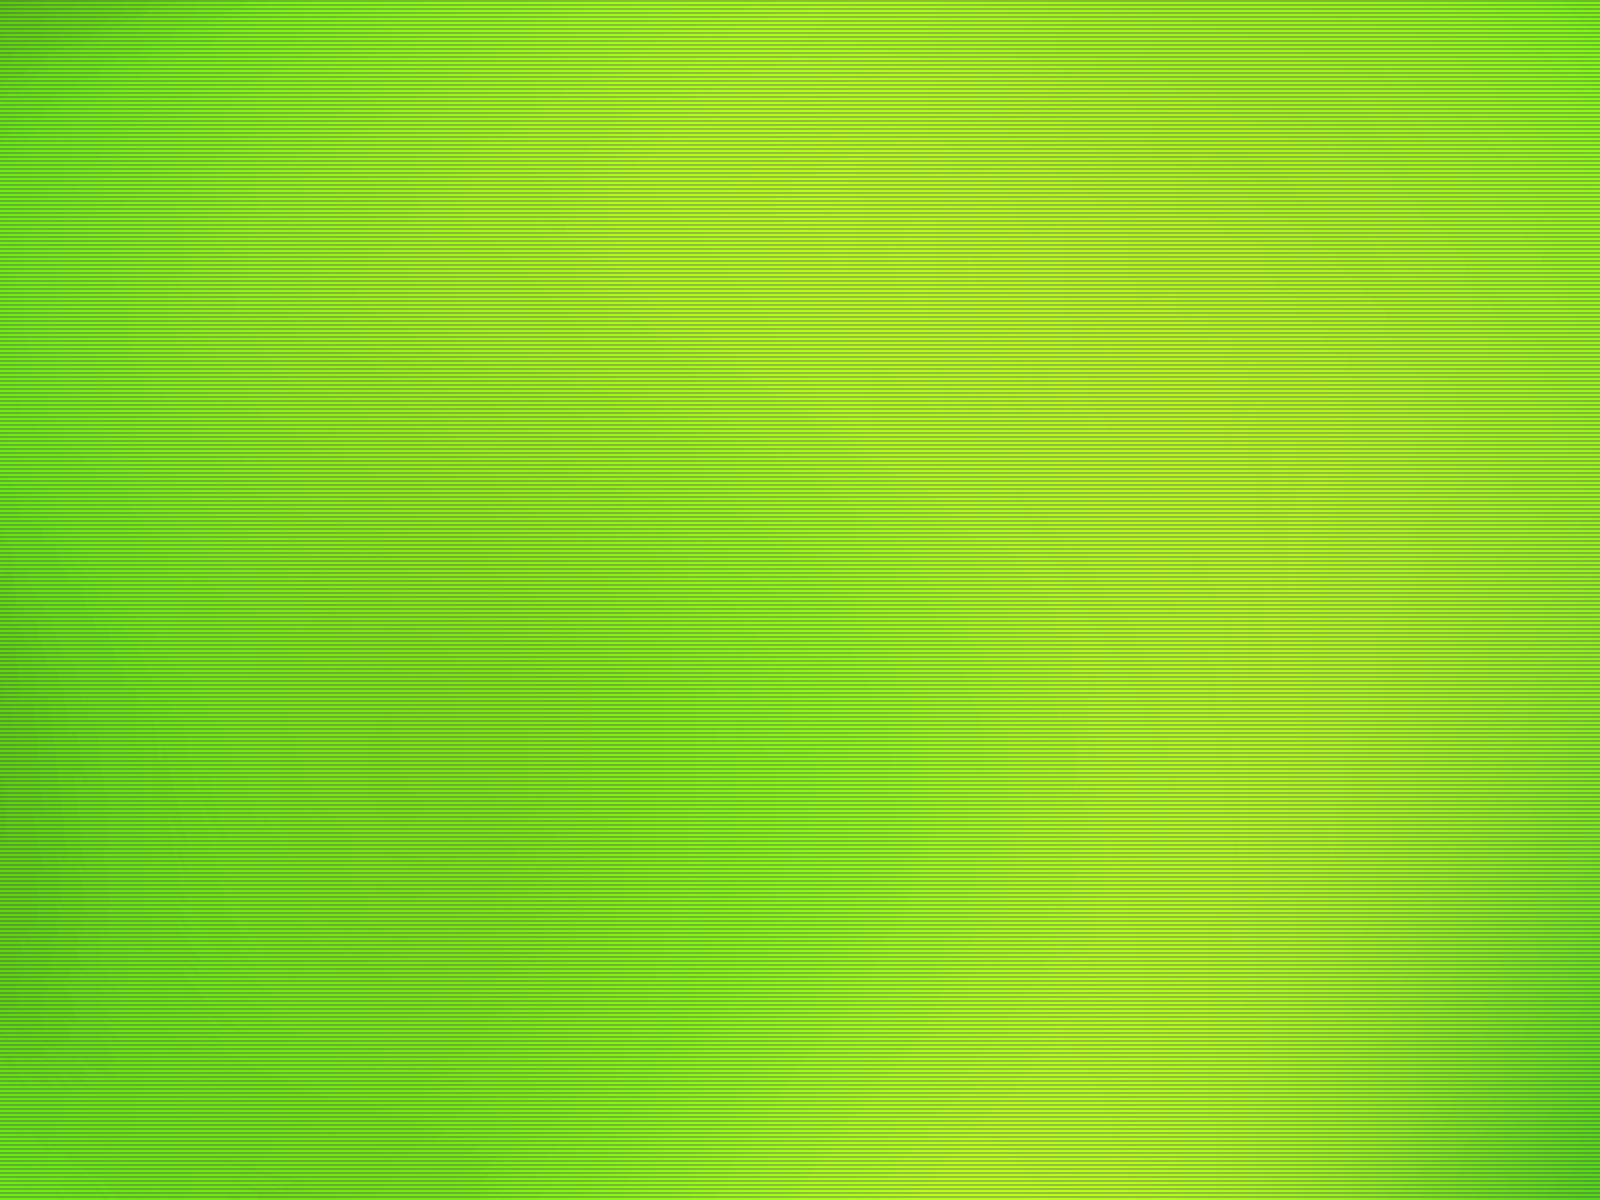 Wallpapers For Simple Light Green Backgrounds 1600x1200